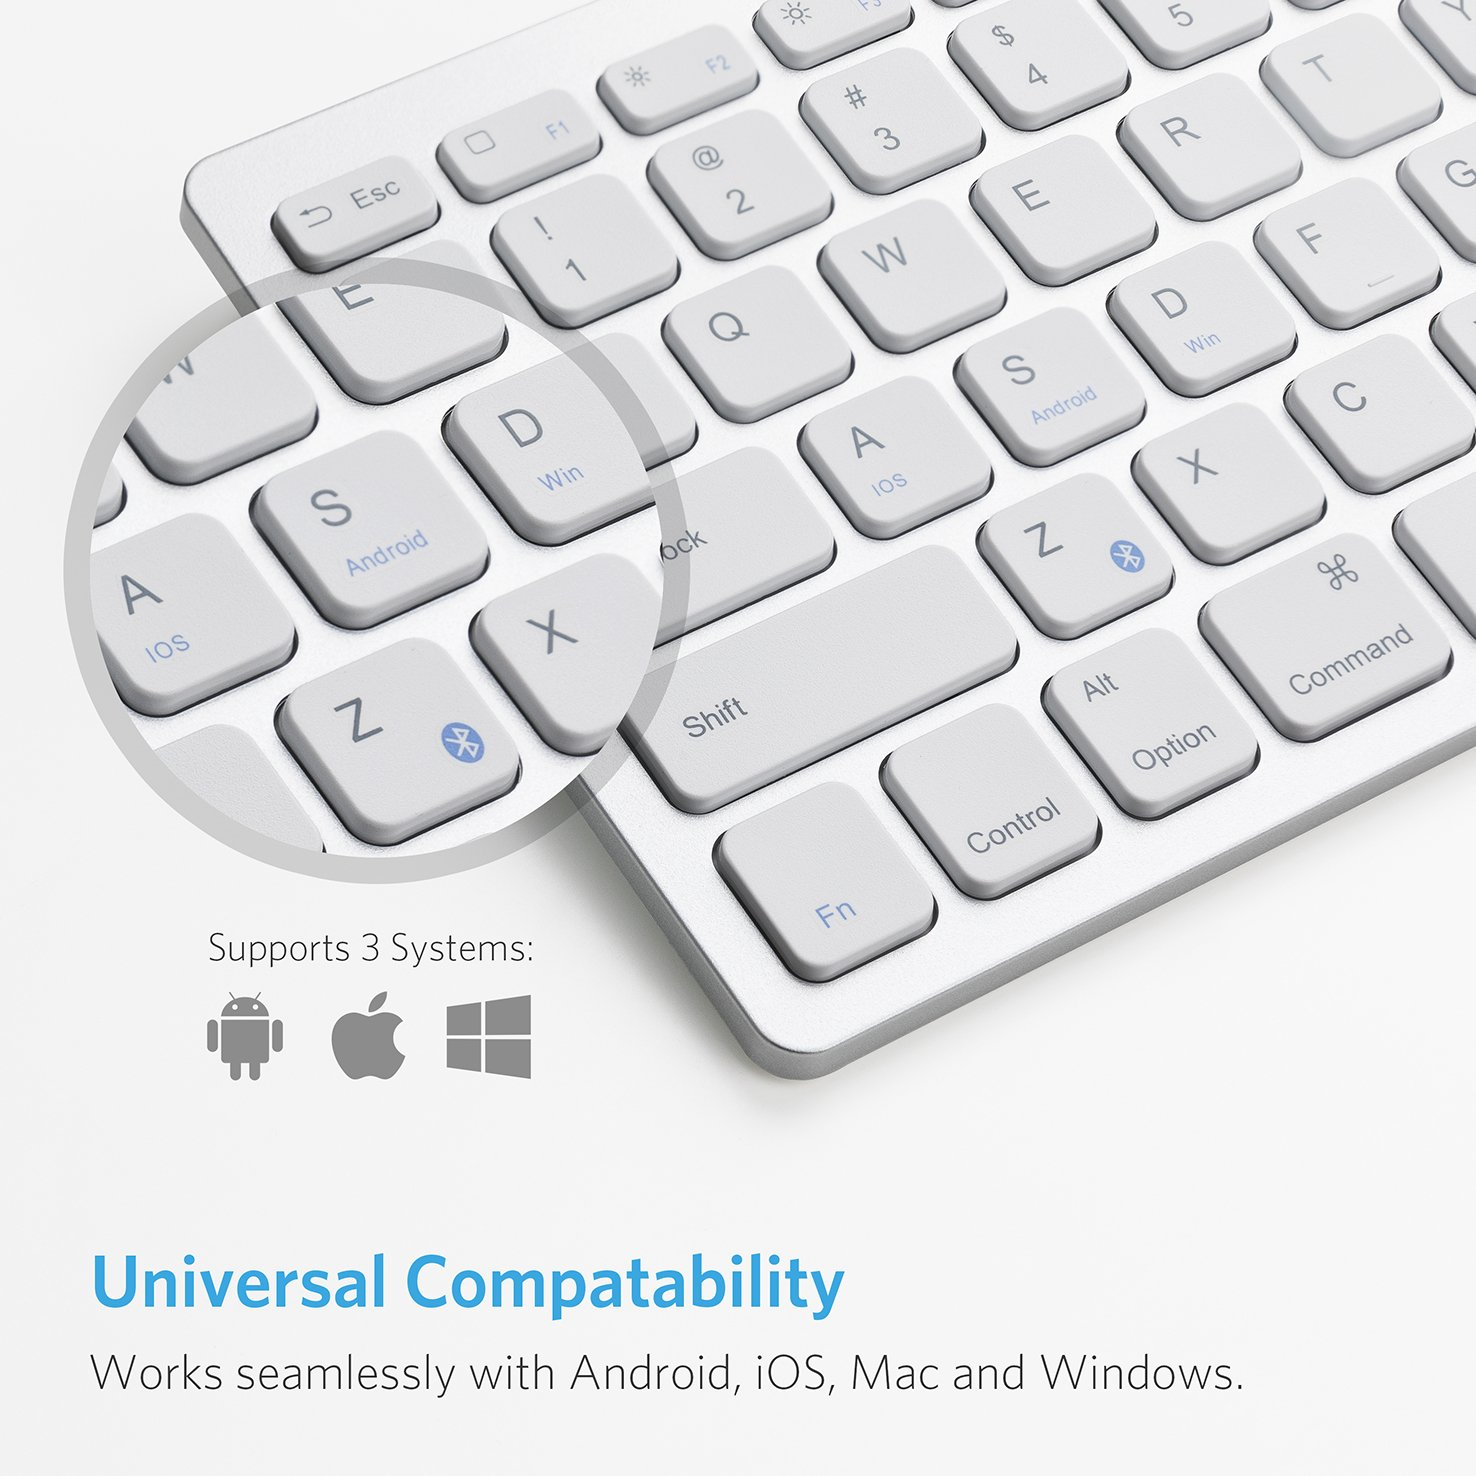 Anker Bluetooth Ultra-Slim Keyboard for iPad Air 2 / Air, iPad Pro, iPad mini 4 / 3 / 2 / 1, iPad 4 / 3 / 2 , New iPad 9.7''(2018/ 2017), Galaxy Tabs and Other Mobile Devices (White) by Anker (Image #4)